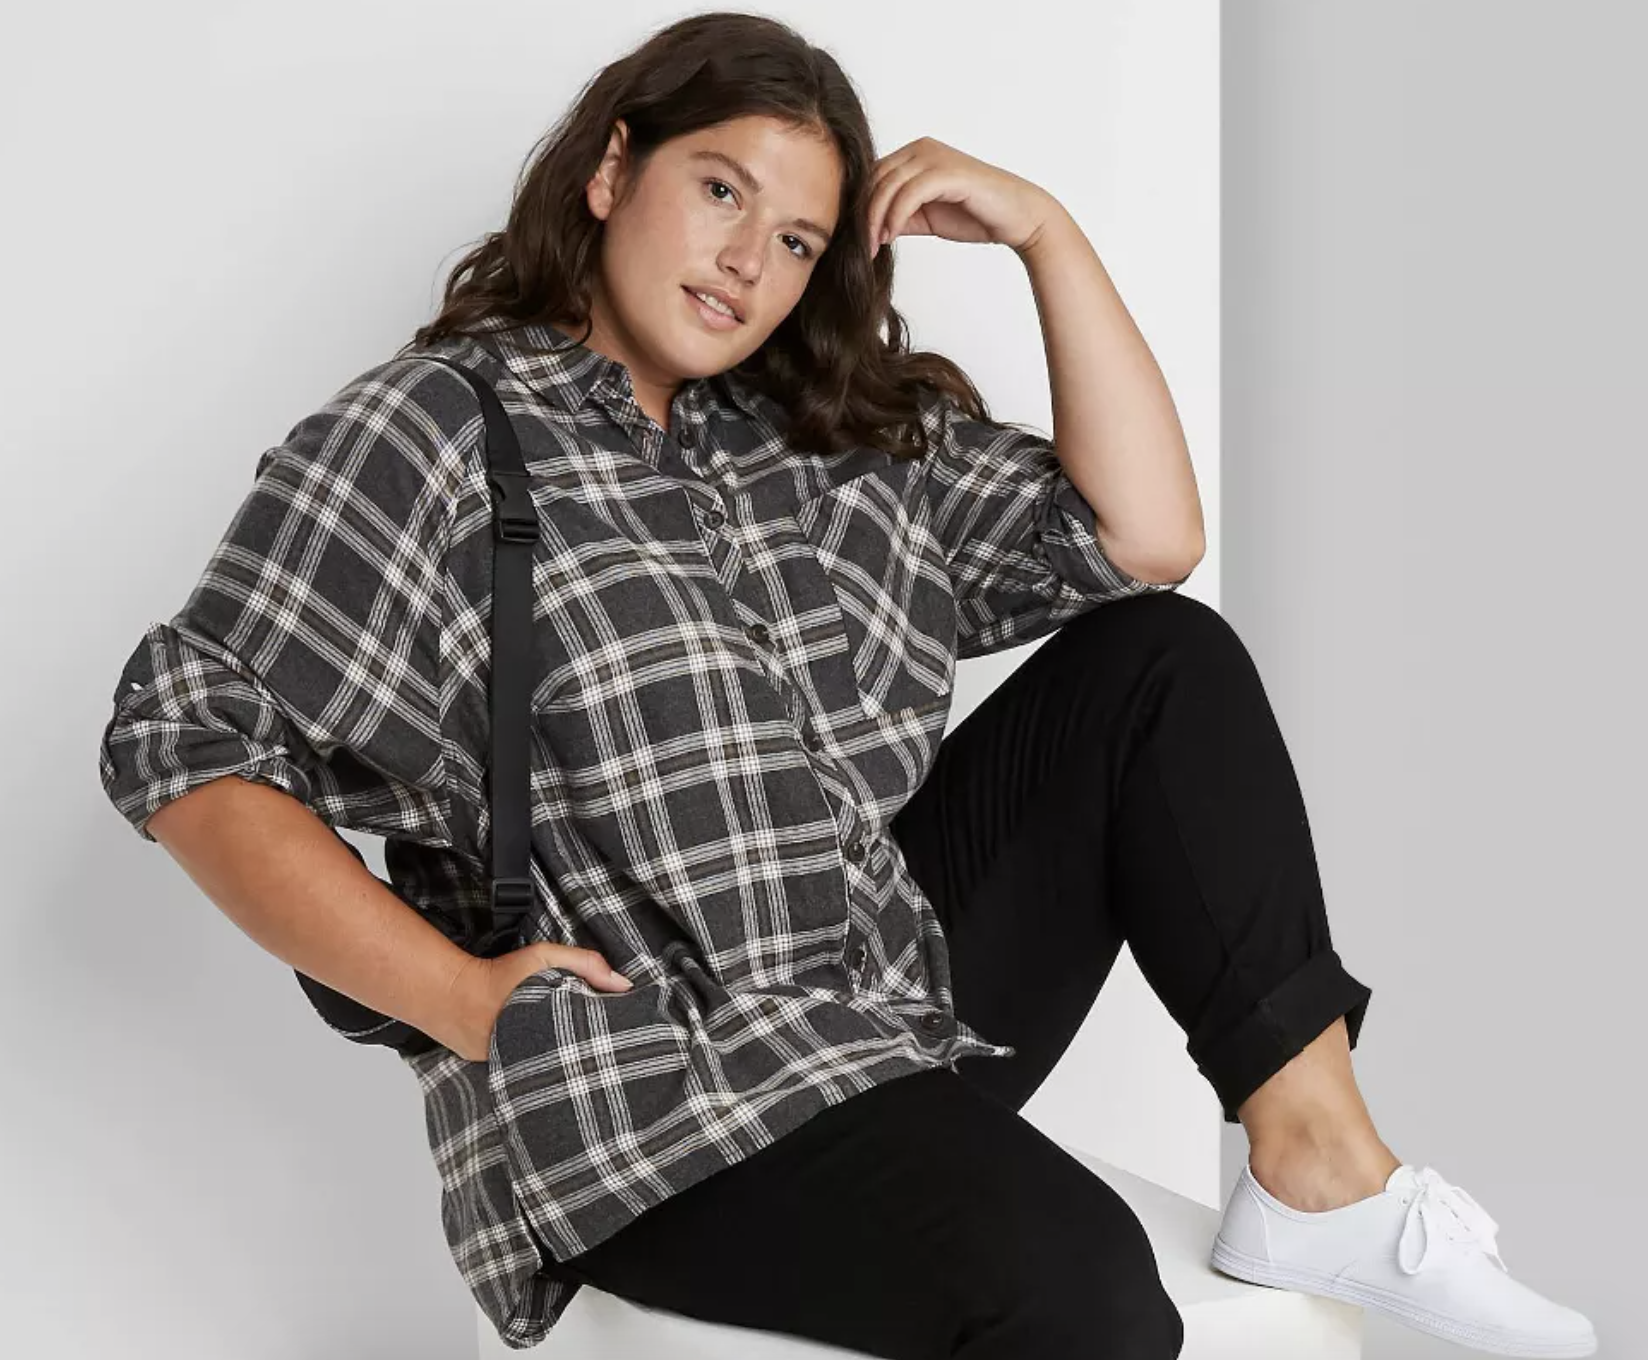 model wearing gray and white plaid shirt